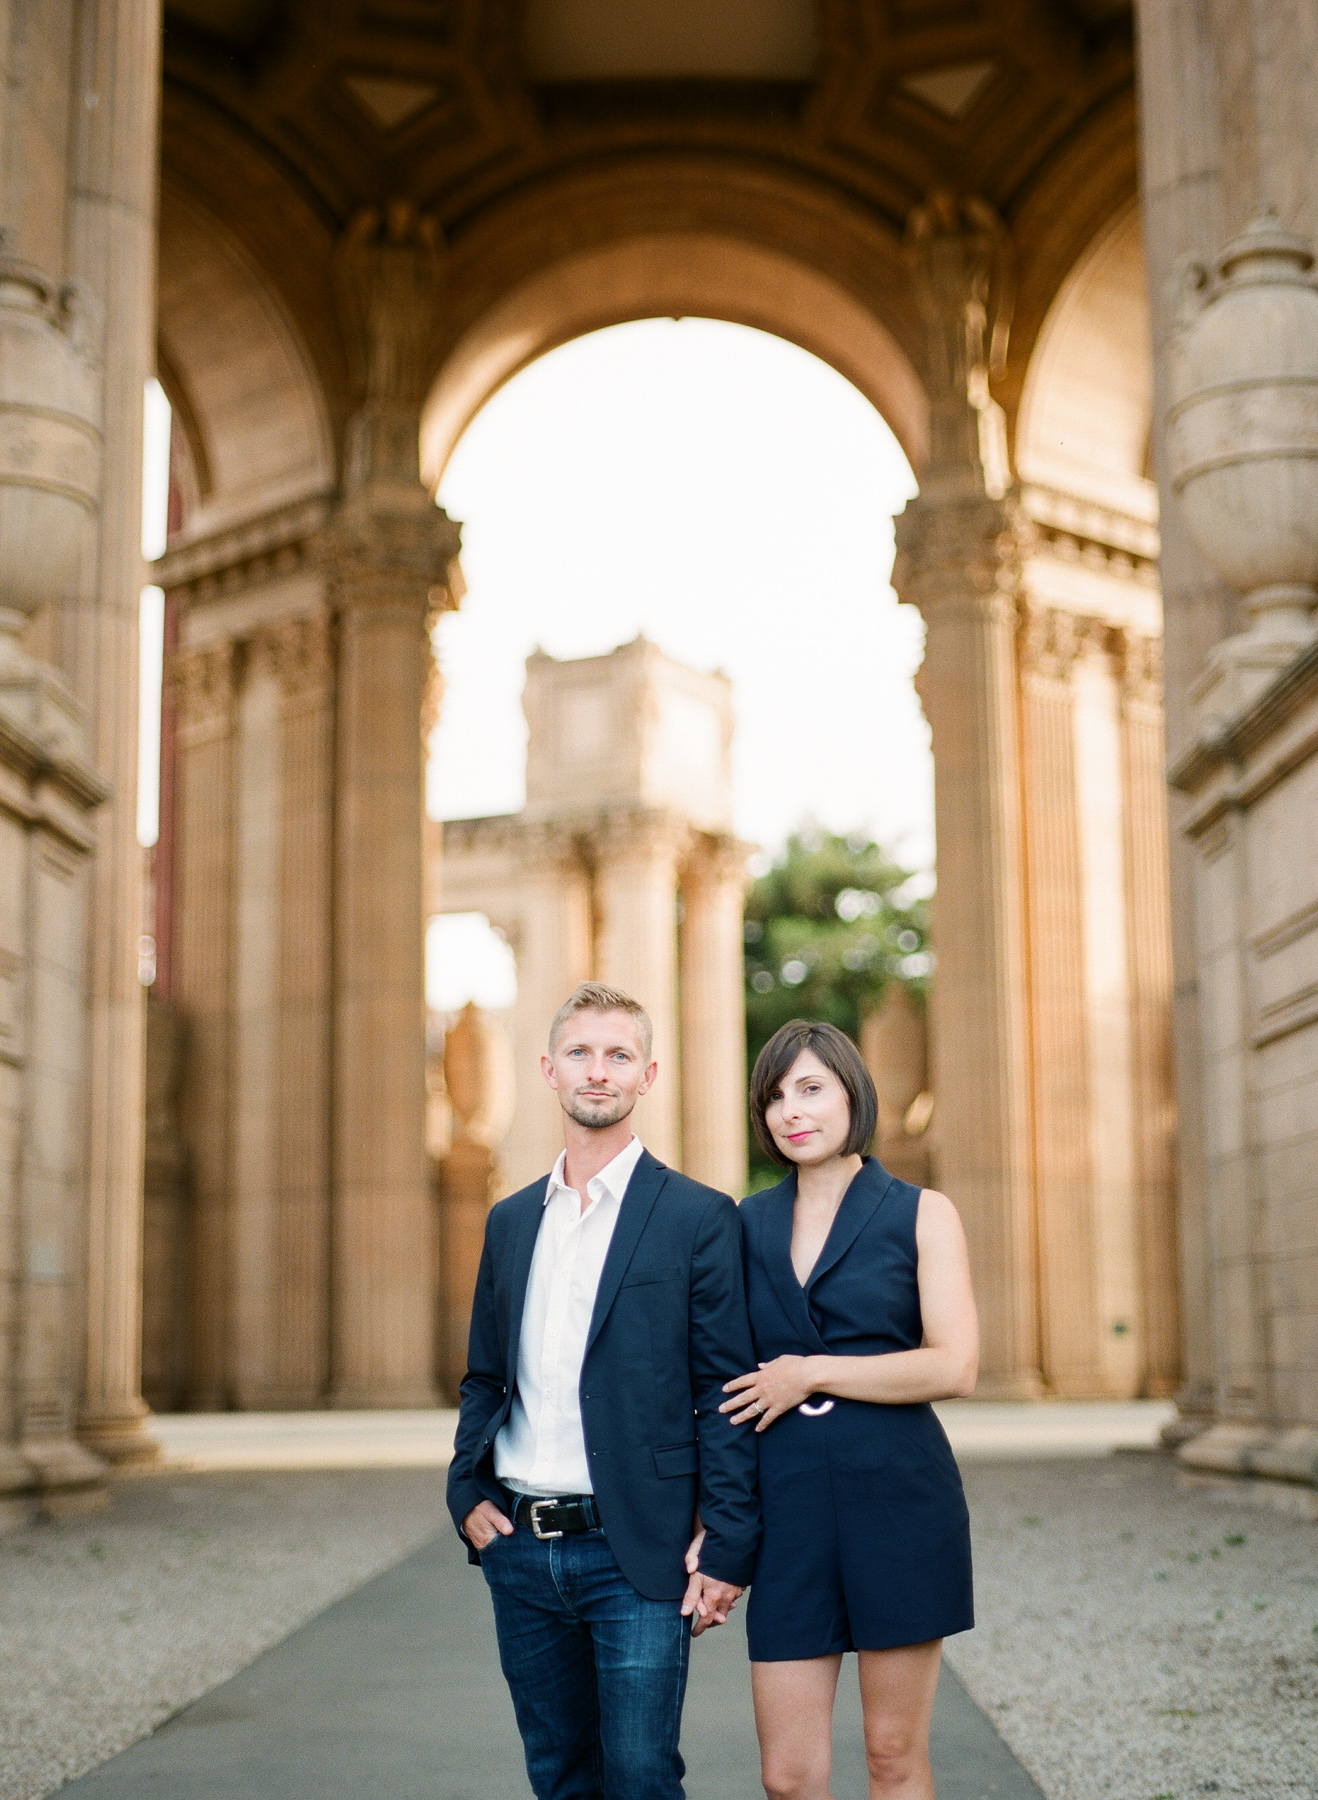 San Francisco Engagement Session Film Photographer 13.jpg